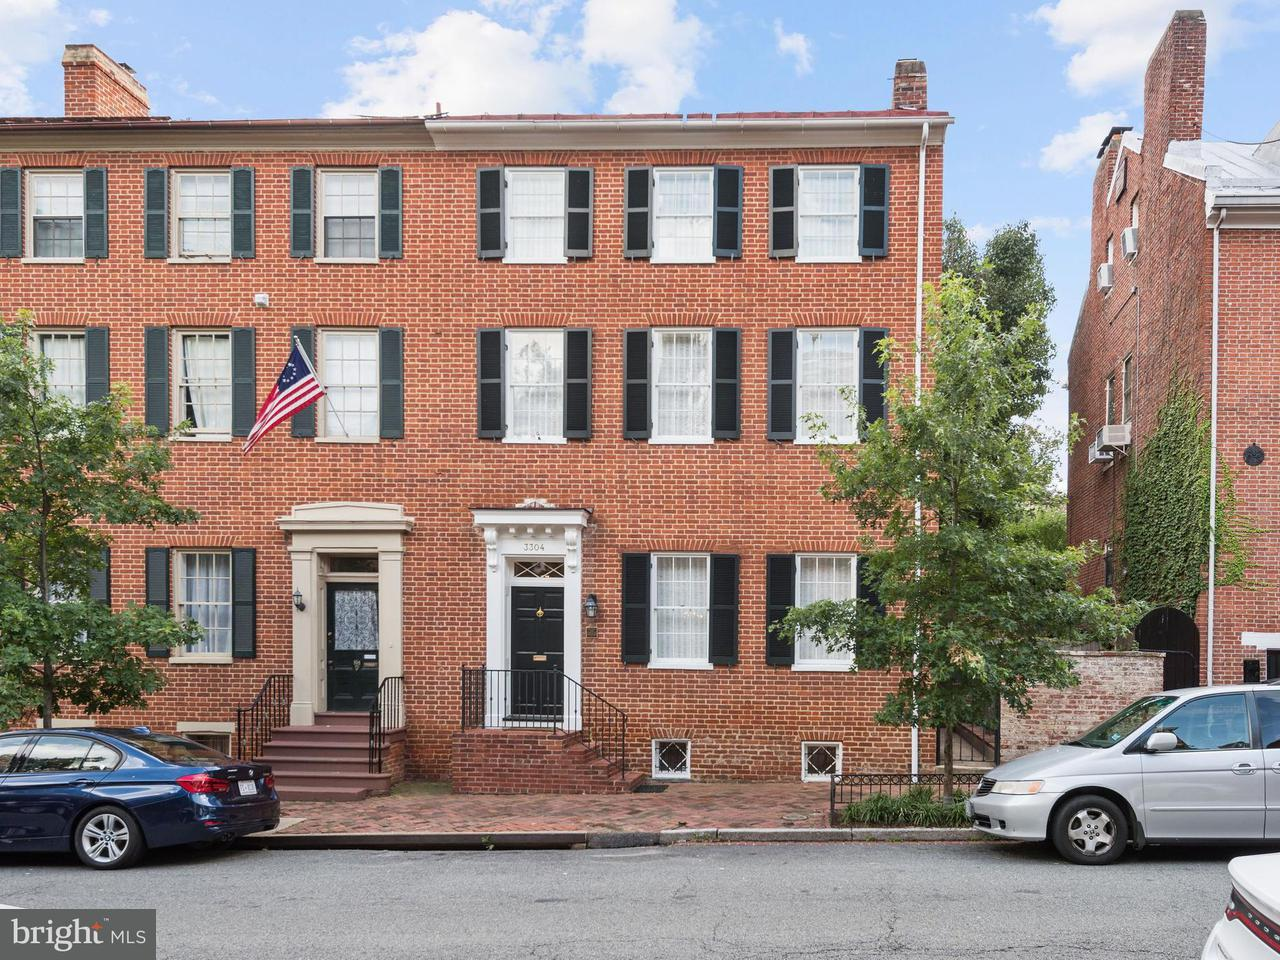 Townhouse for Sale at 3304 N ST NW 3304 N ST NW Washington, District Of Columbia 20007 United States